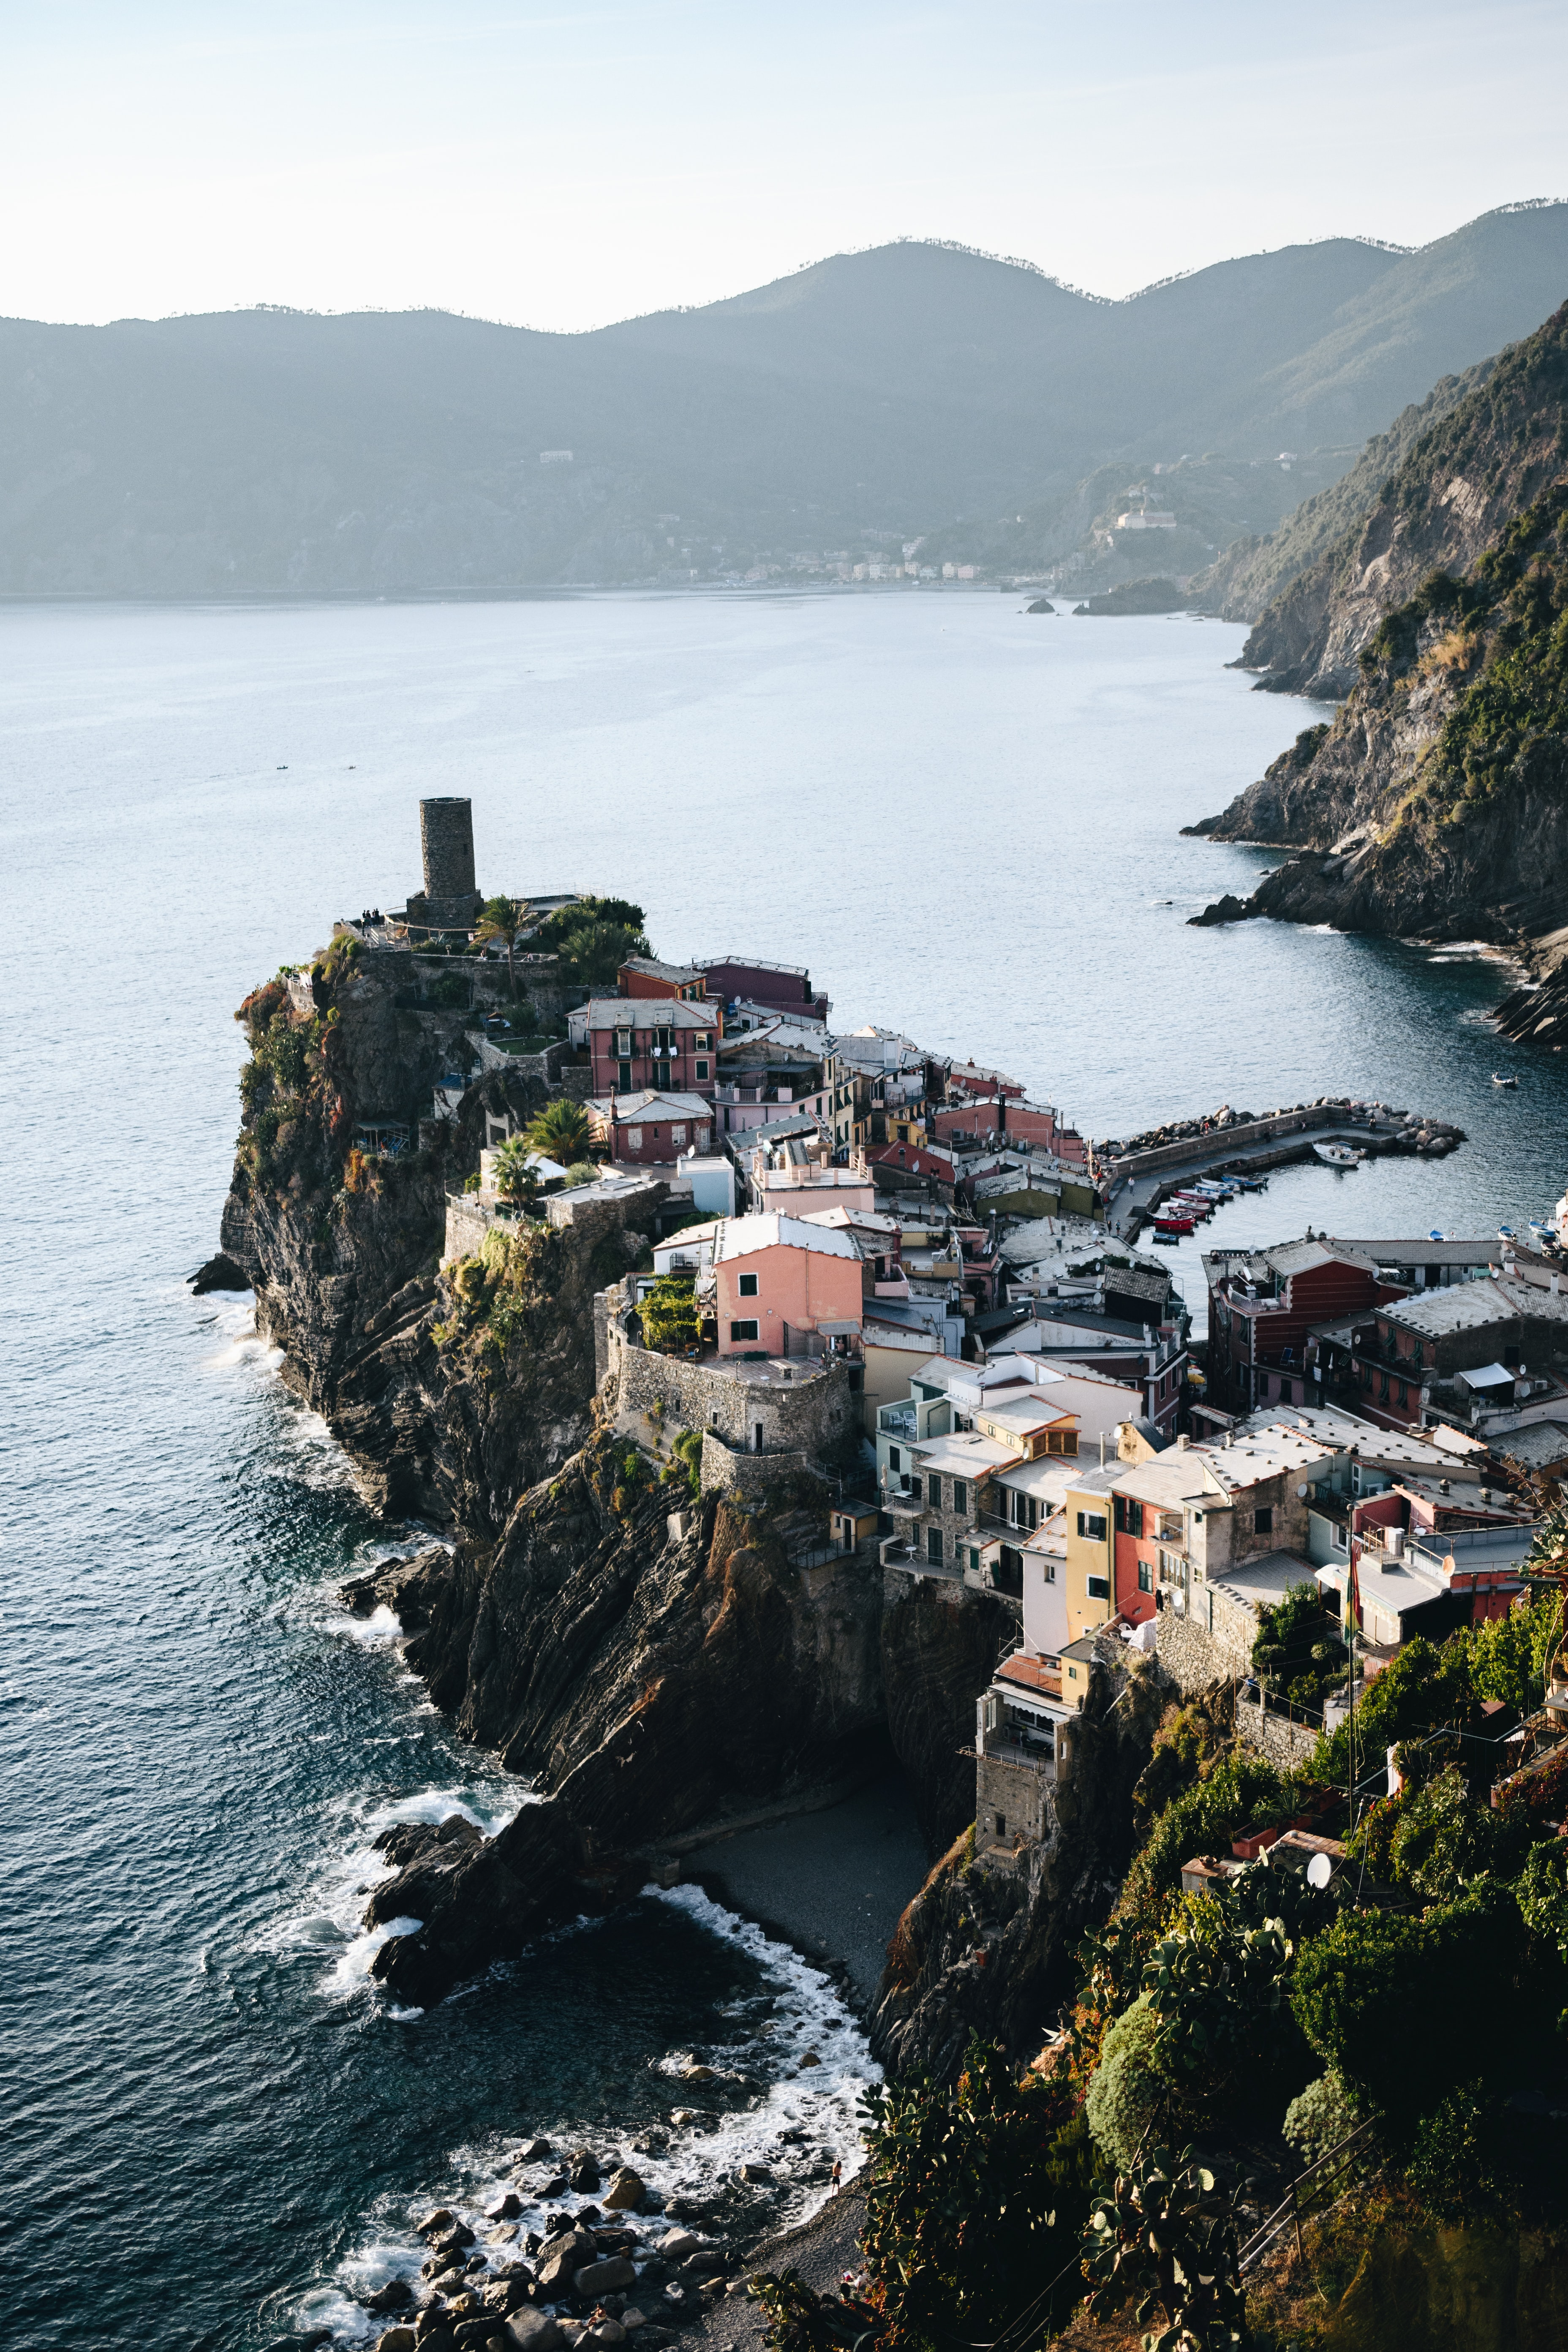 aerial view photography of village on cliff